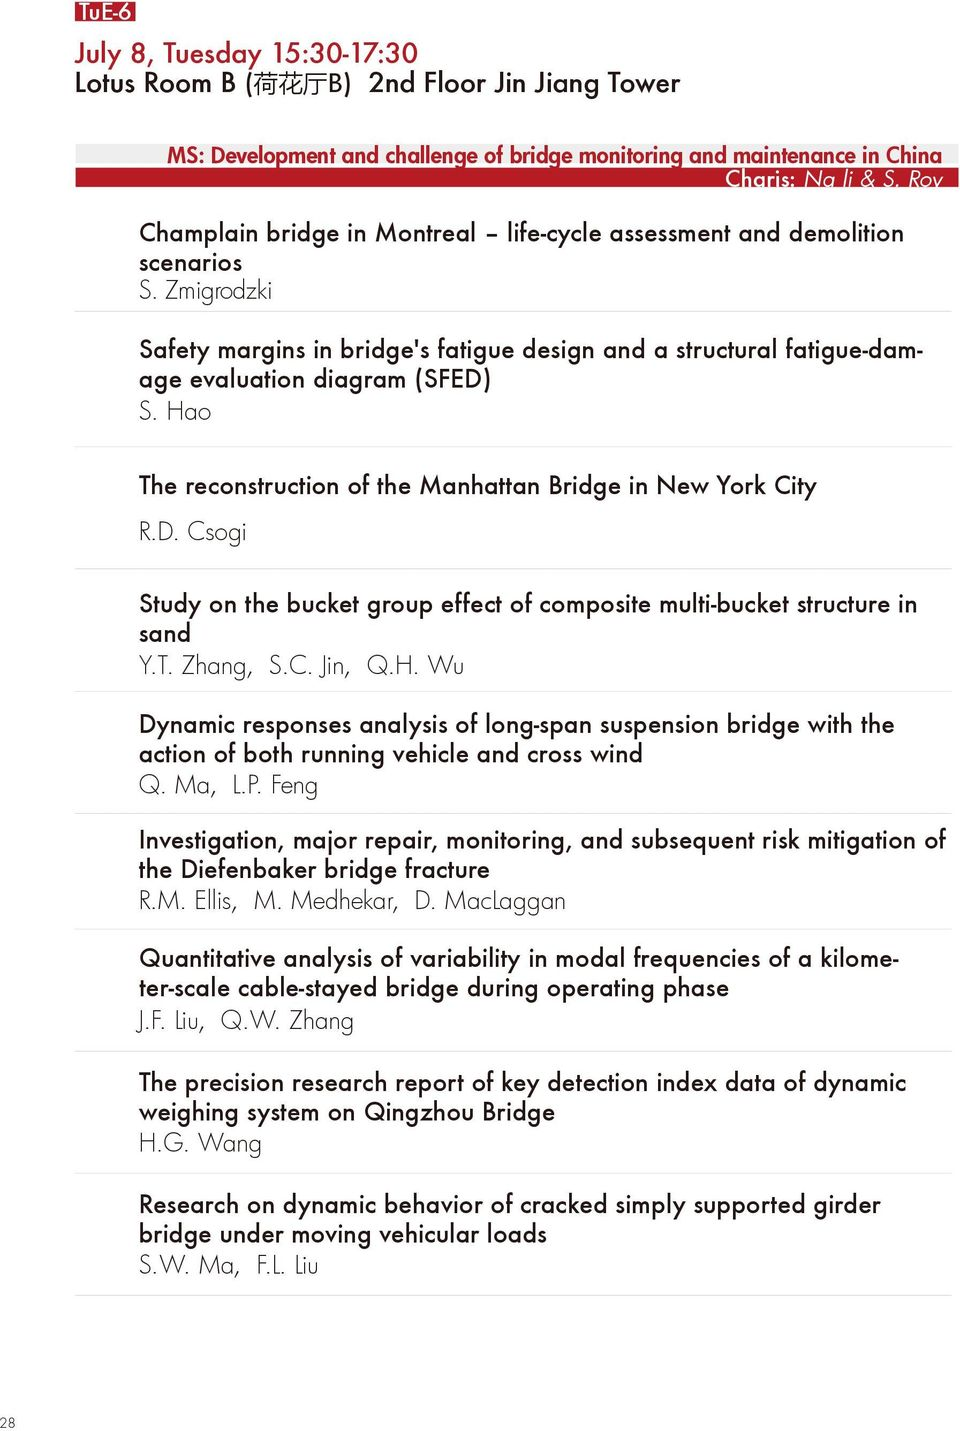 Hao The reconstruction of the Manhattan Bridge in New York City R.D. Csogi Study on the bucket group effect of composite multi-bucket structure in sand Y.T. Zhang, S.C. Jin, Q.H. Wu Dynamic responses analysis of long-span suspension bridge with the action of both running vehicle and cross wind Q.